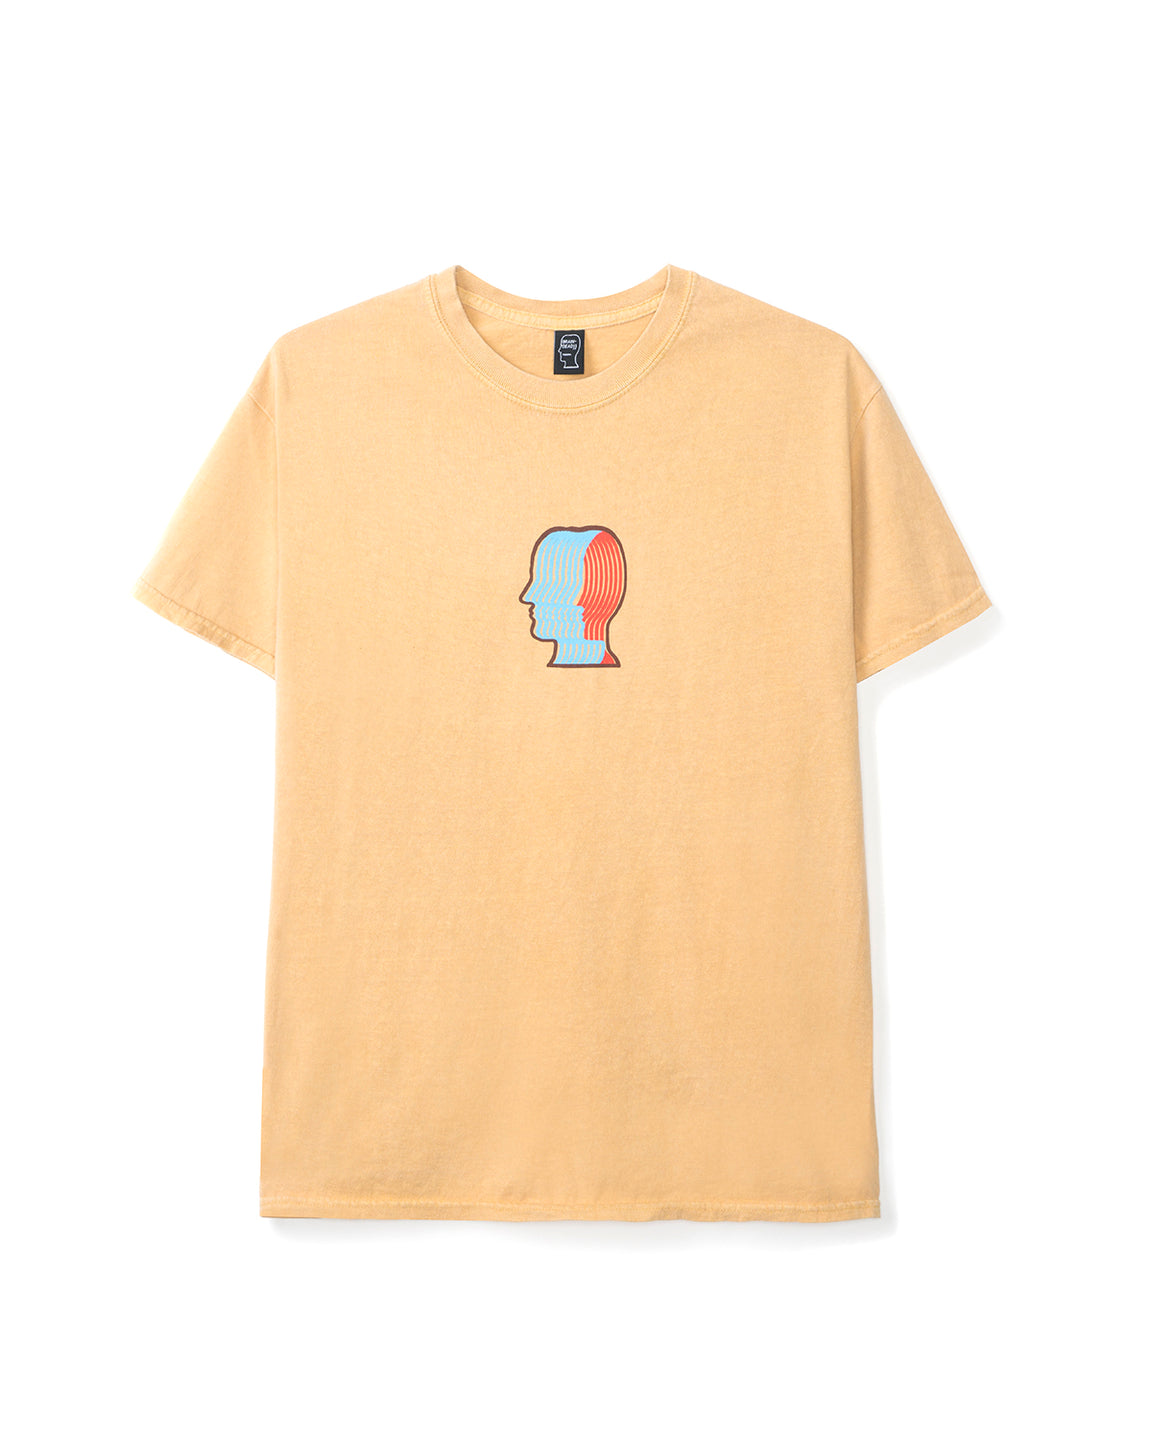 Breathing Problems T-shirt - Yellow - Brain Dead